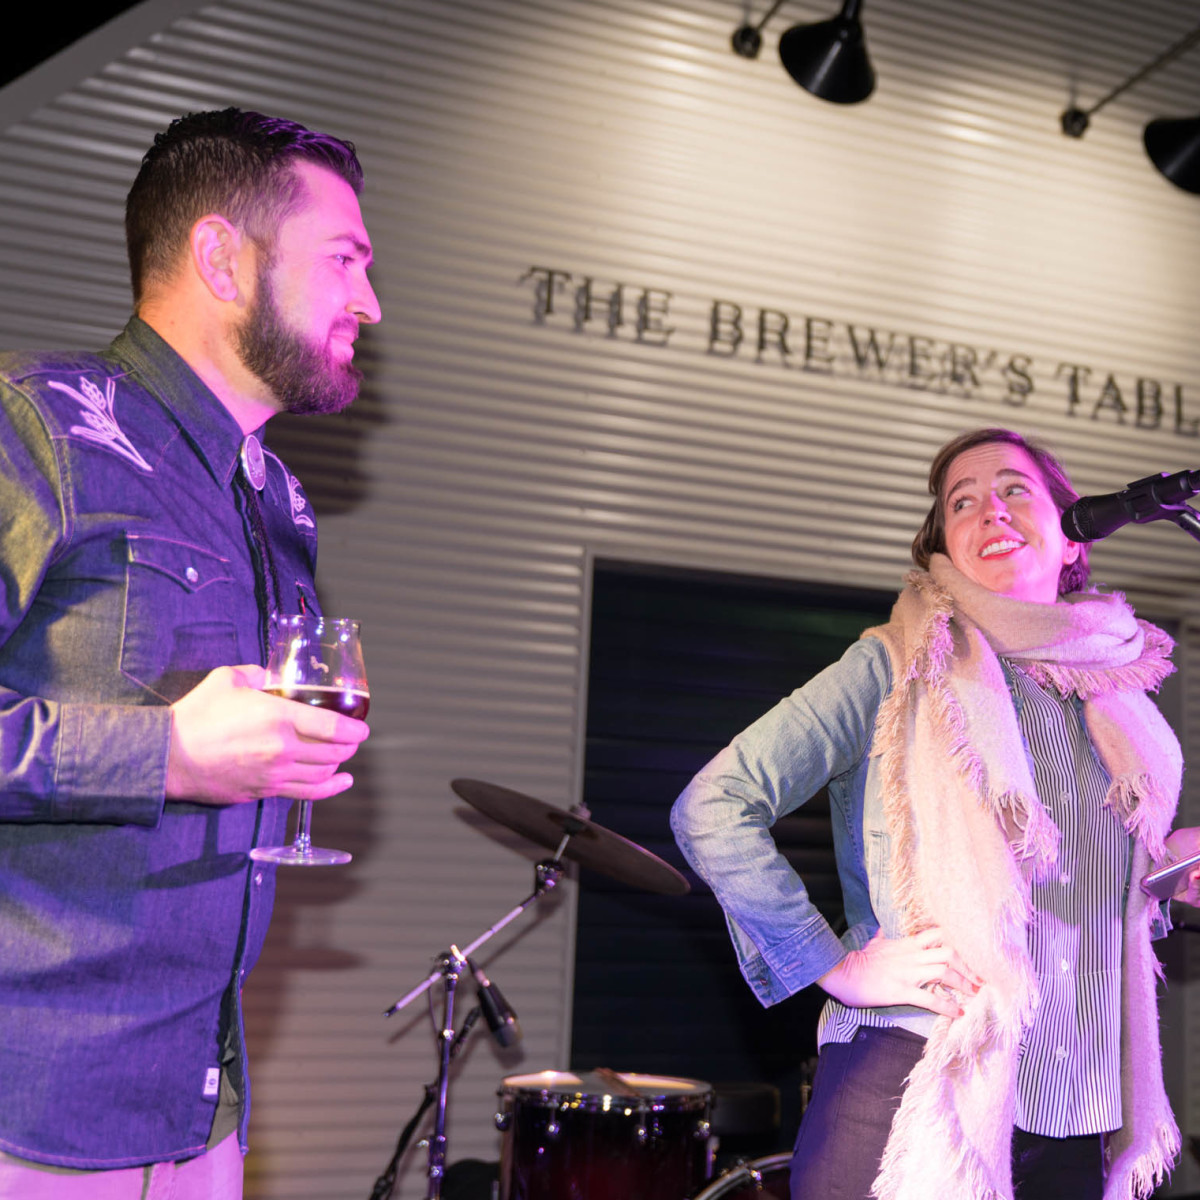 James Beard Foundation Smoke Session at The Brewer's Table Jake Maddux Alison Tozzi Liu